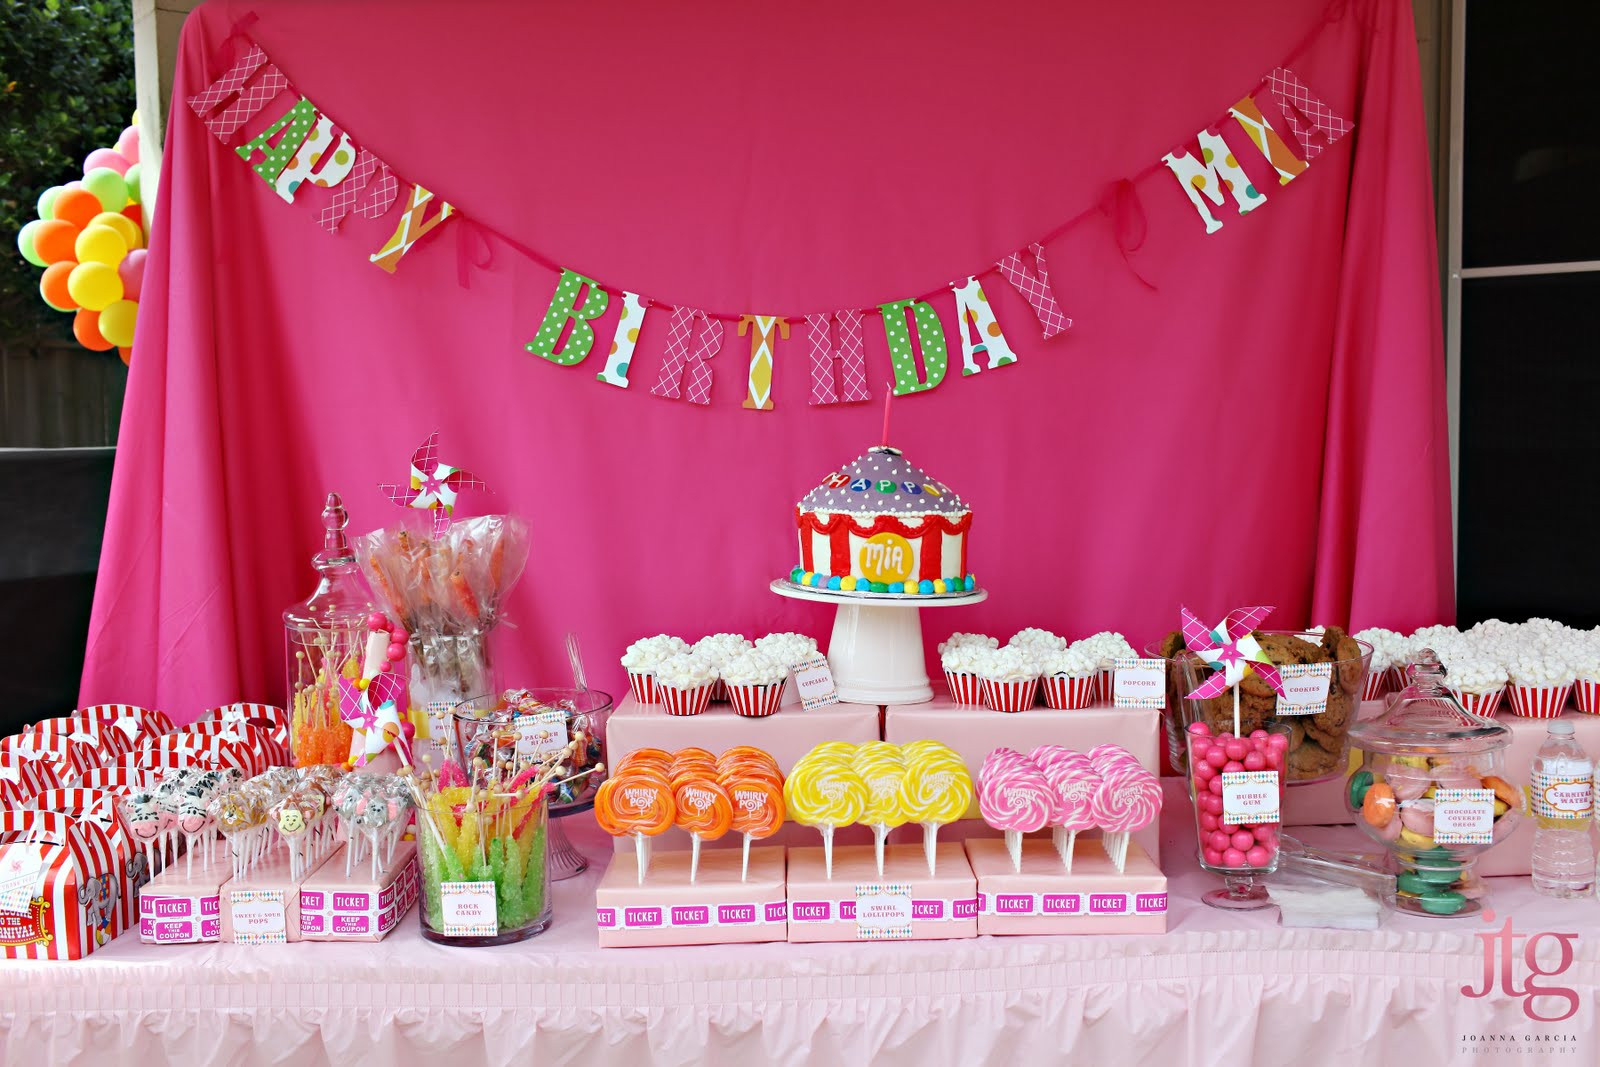 Best ideas about Girls Birthday Party . Save or Pin Popular Themes for Boys or Girls Birthday Parties Anders Now.